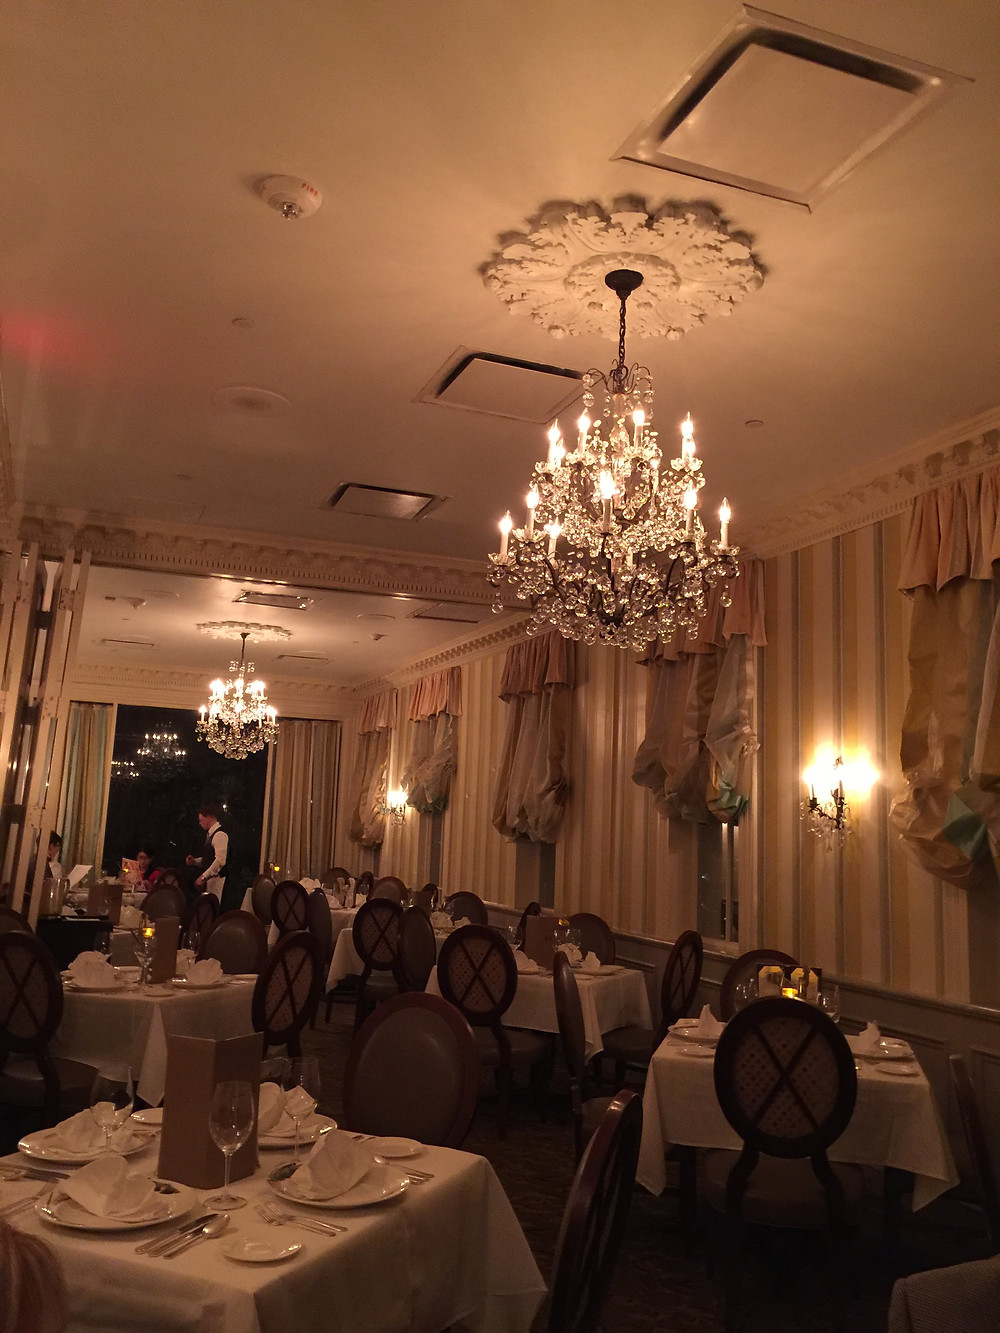 elegant dining room with tables, chandeliers, and light sconces